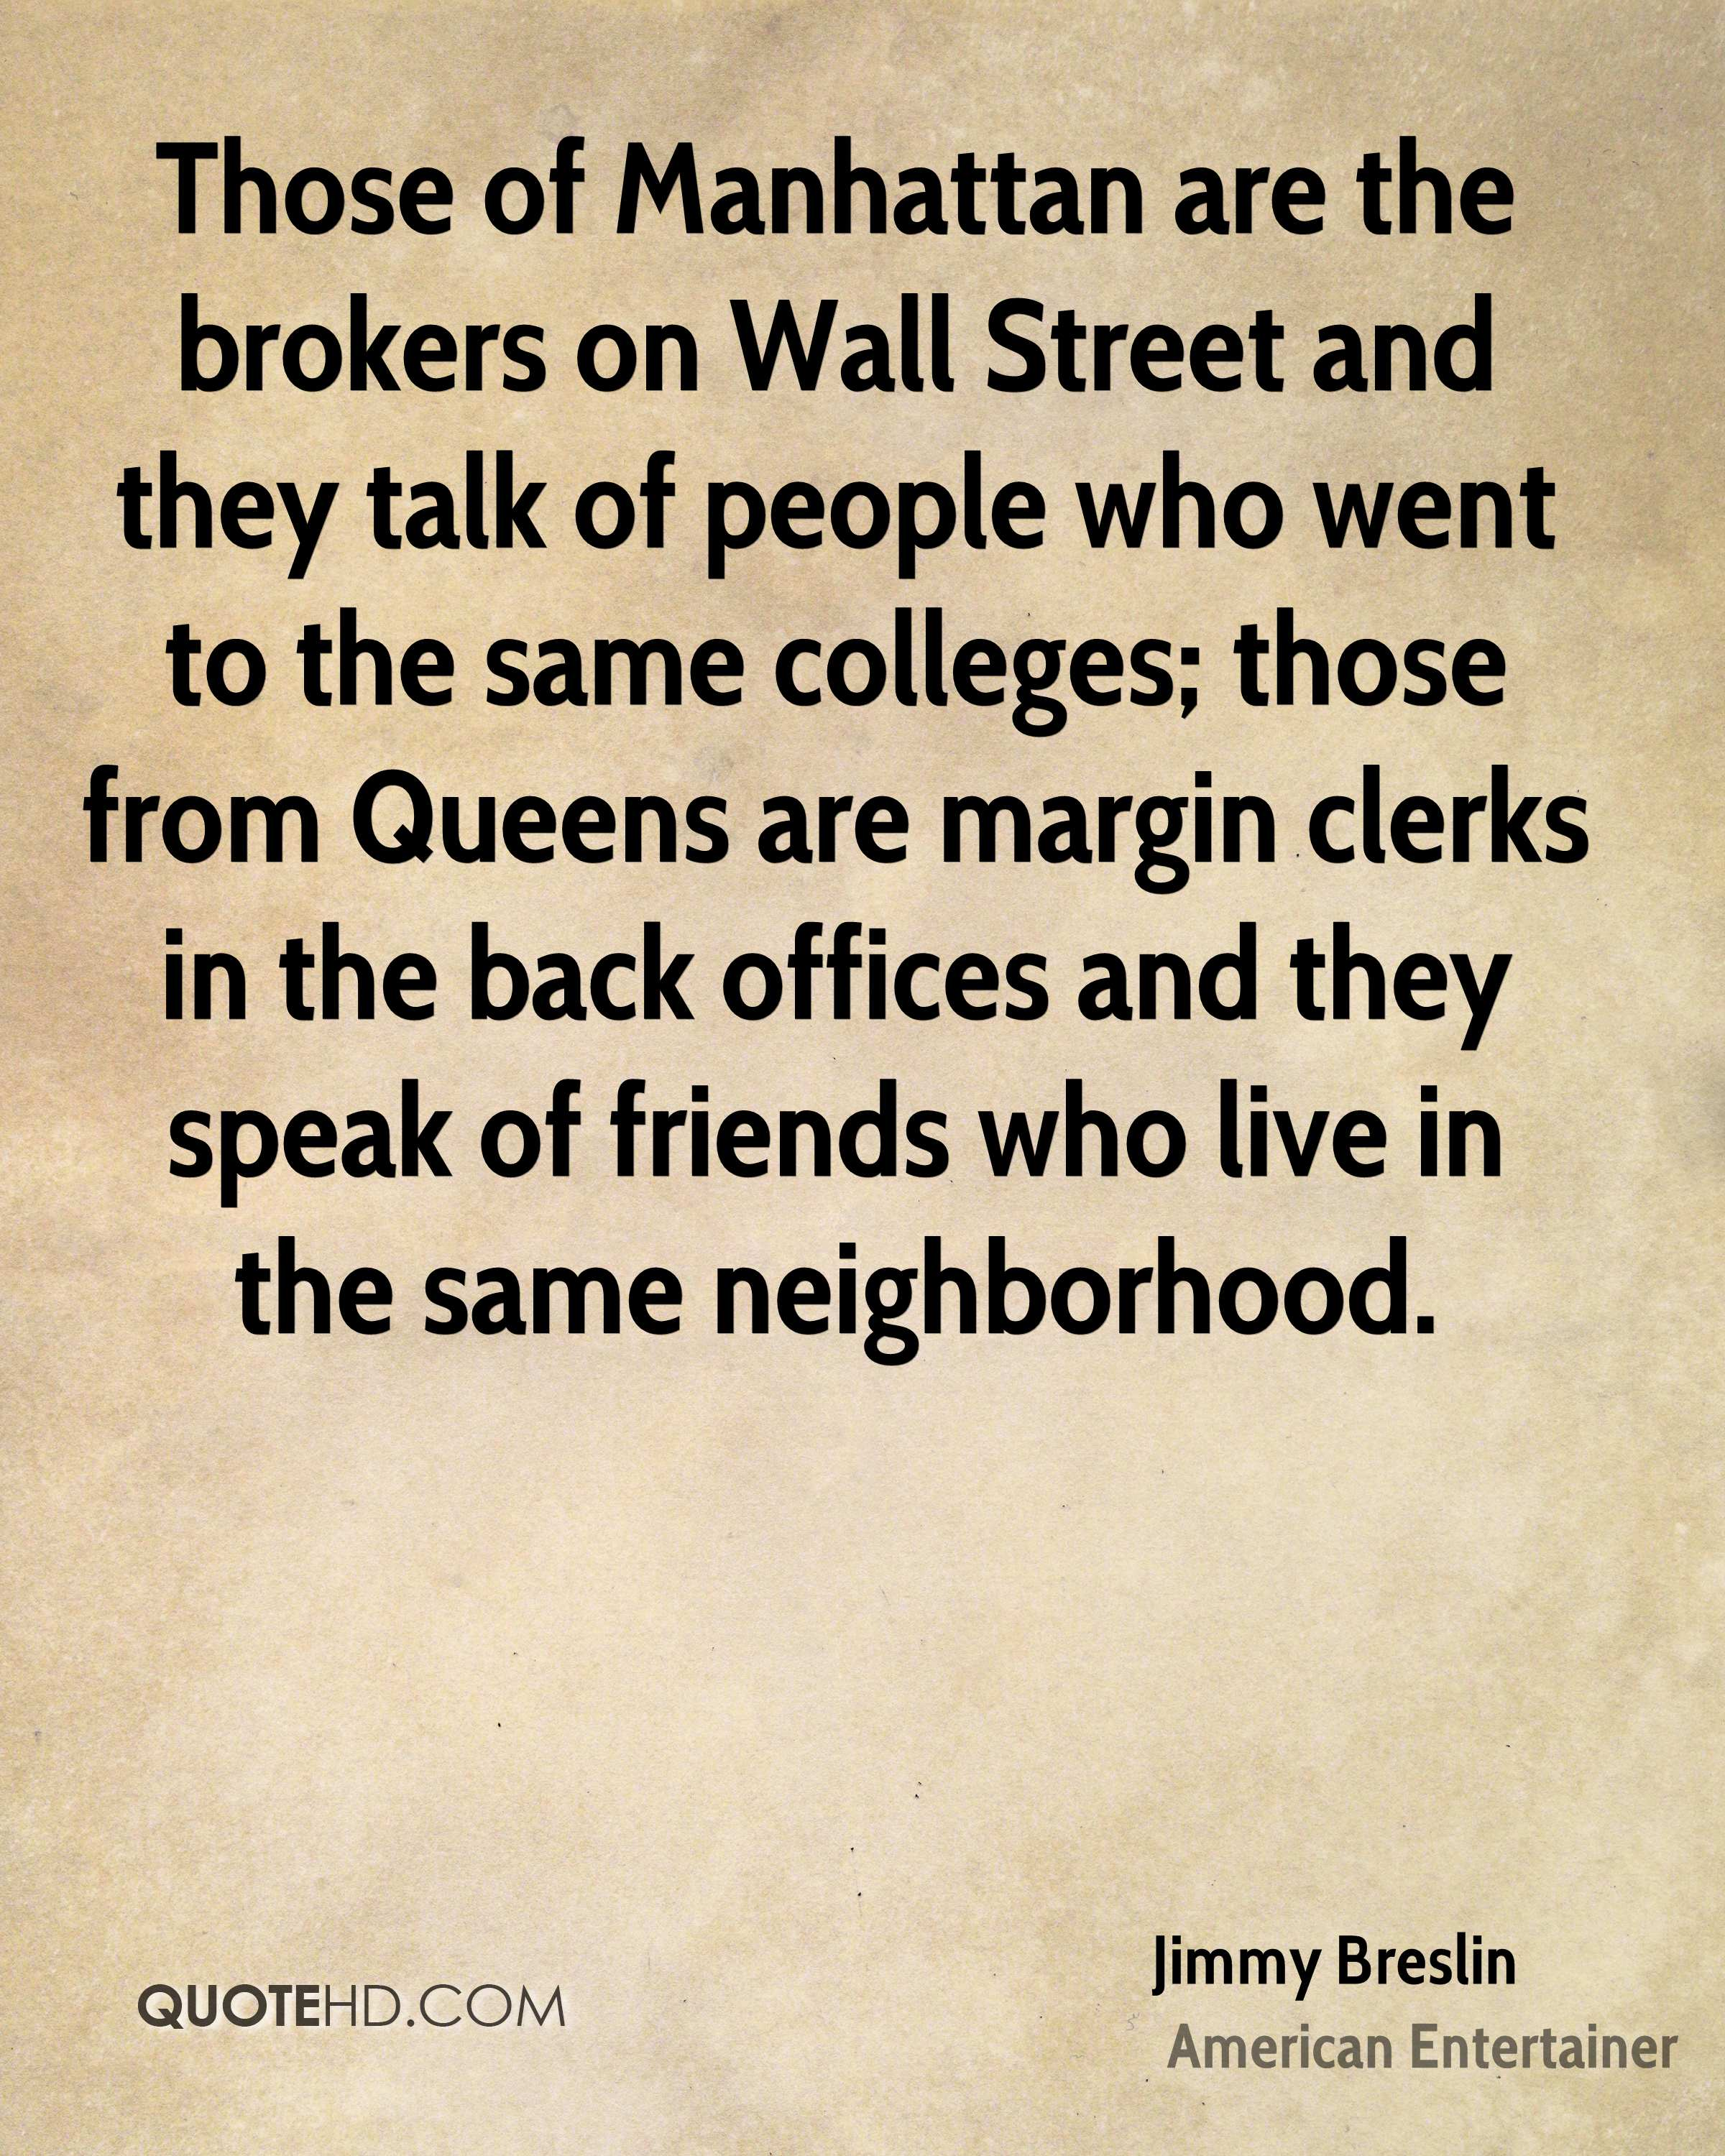 Those of Manhattan are the brokers on Wall Street and they talk of people who went to the same colleges; those from Queens are margin clerks in the back offices and they speak of friends who live in the same neighborhood.